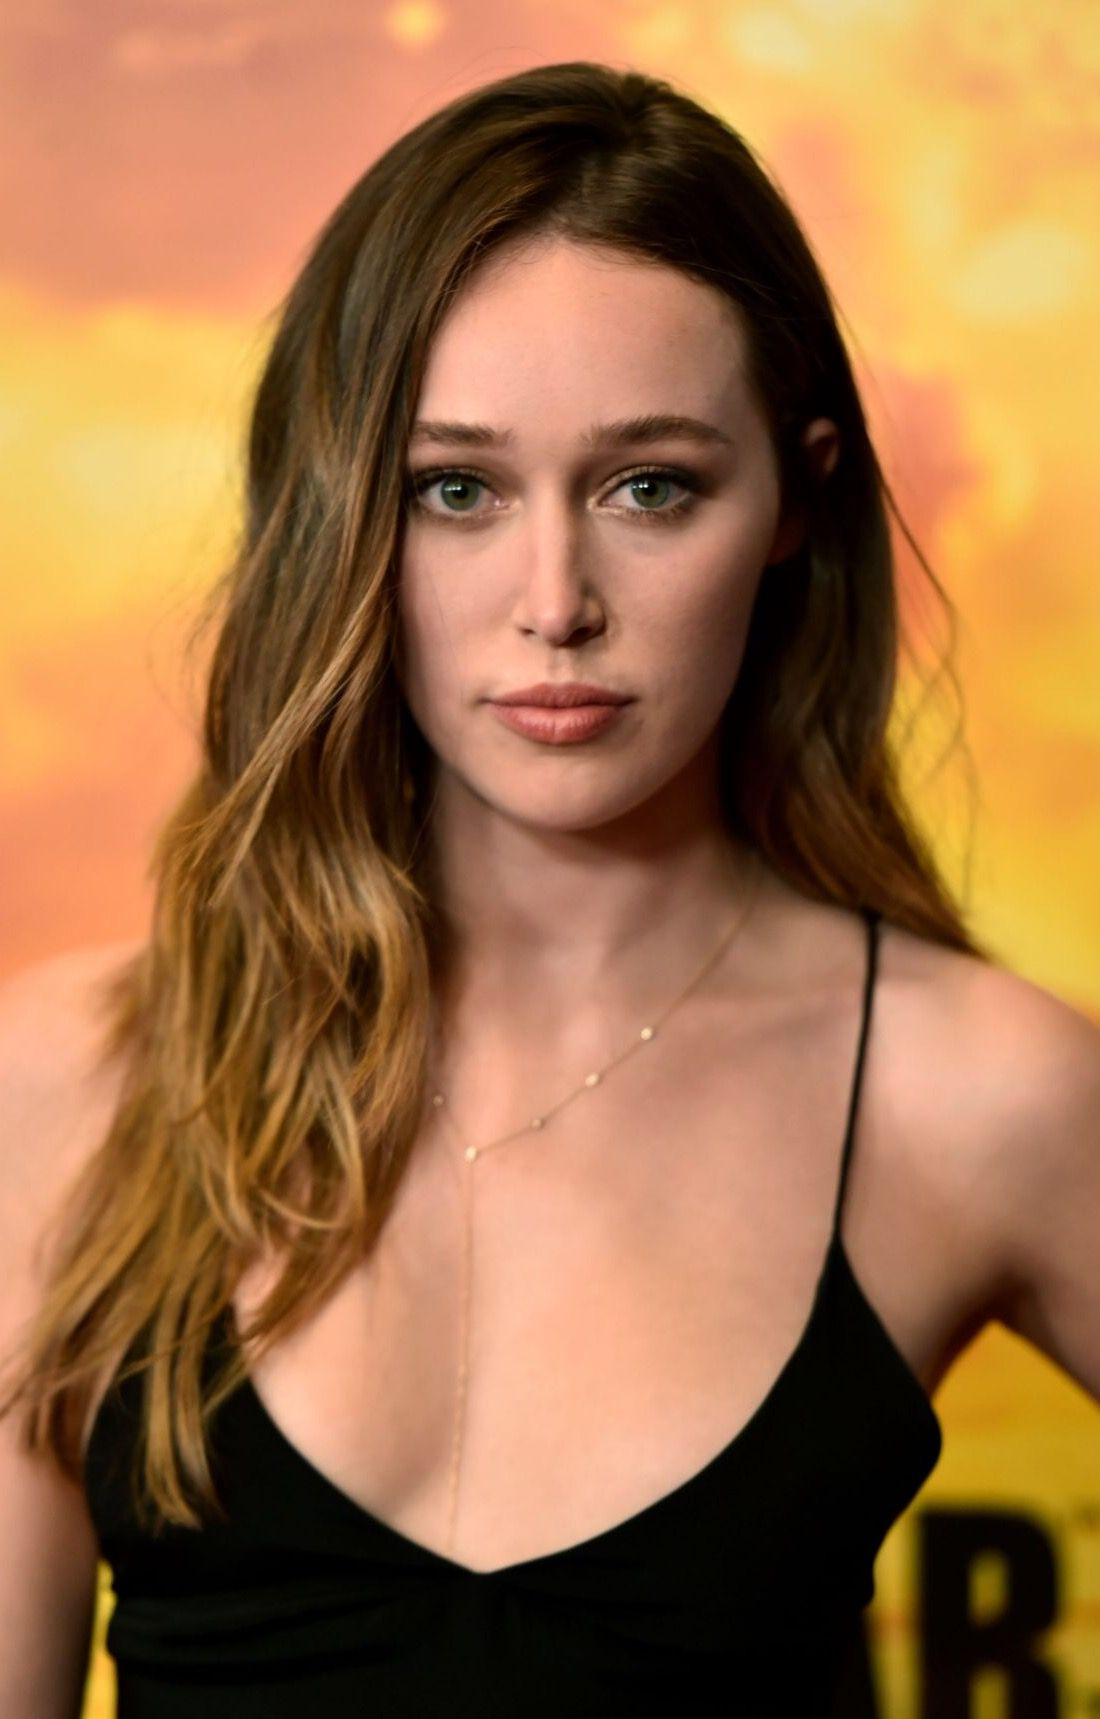 Pics Alycia Debnam-Carey naked (93 foto and video), Topless, Hot, Twitter, bra 2018